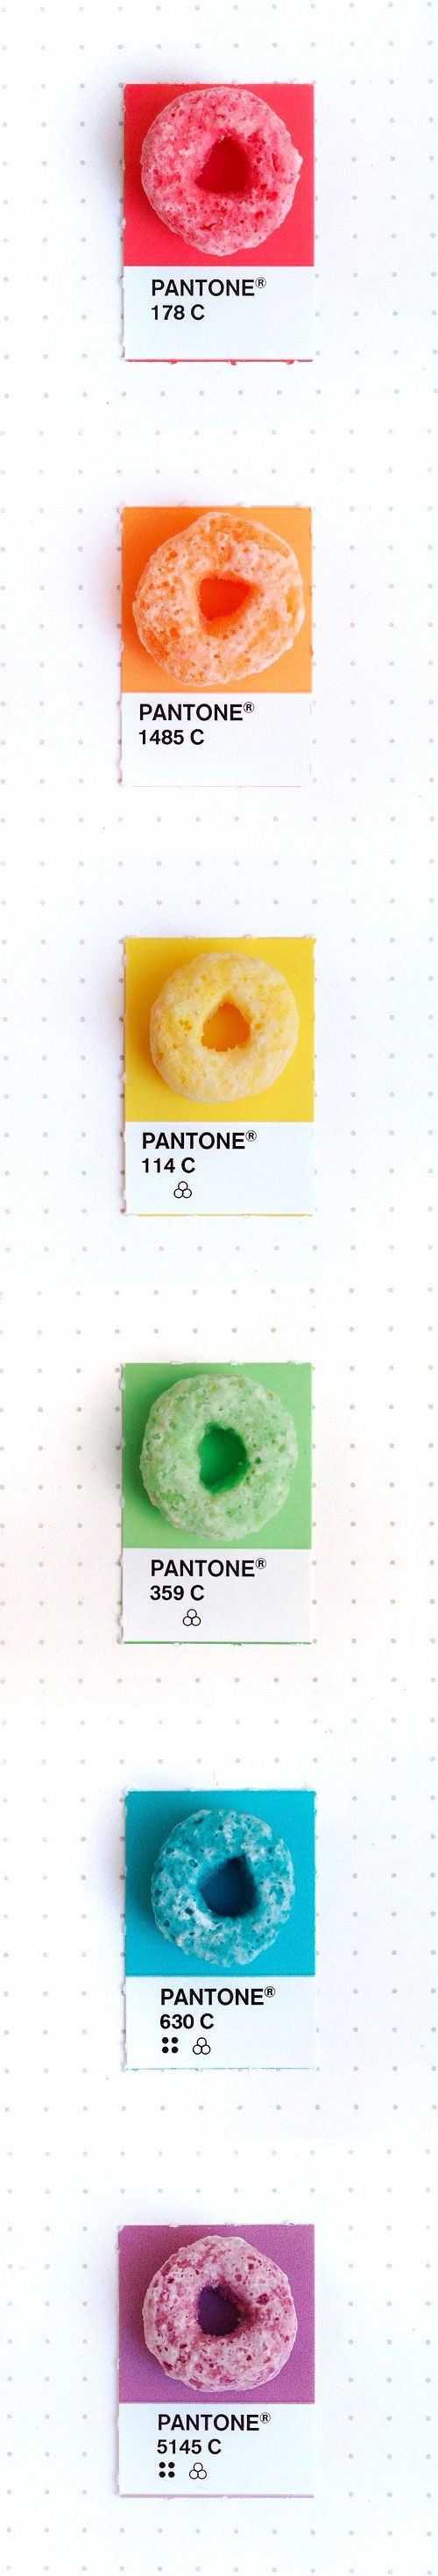 Fruit Loops, Tiny PMS Match by Inka Mathew. Mathew takes a variety of small objects and matches them to their primary Pantone colour. Source: http://tinypmsmatch.tumblr.com